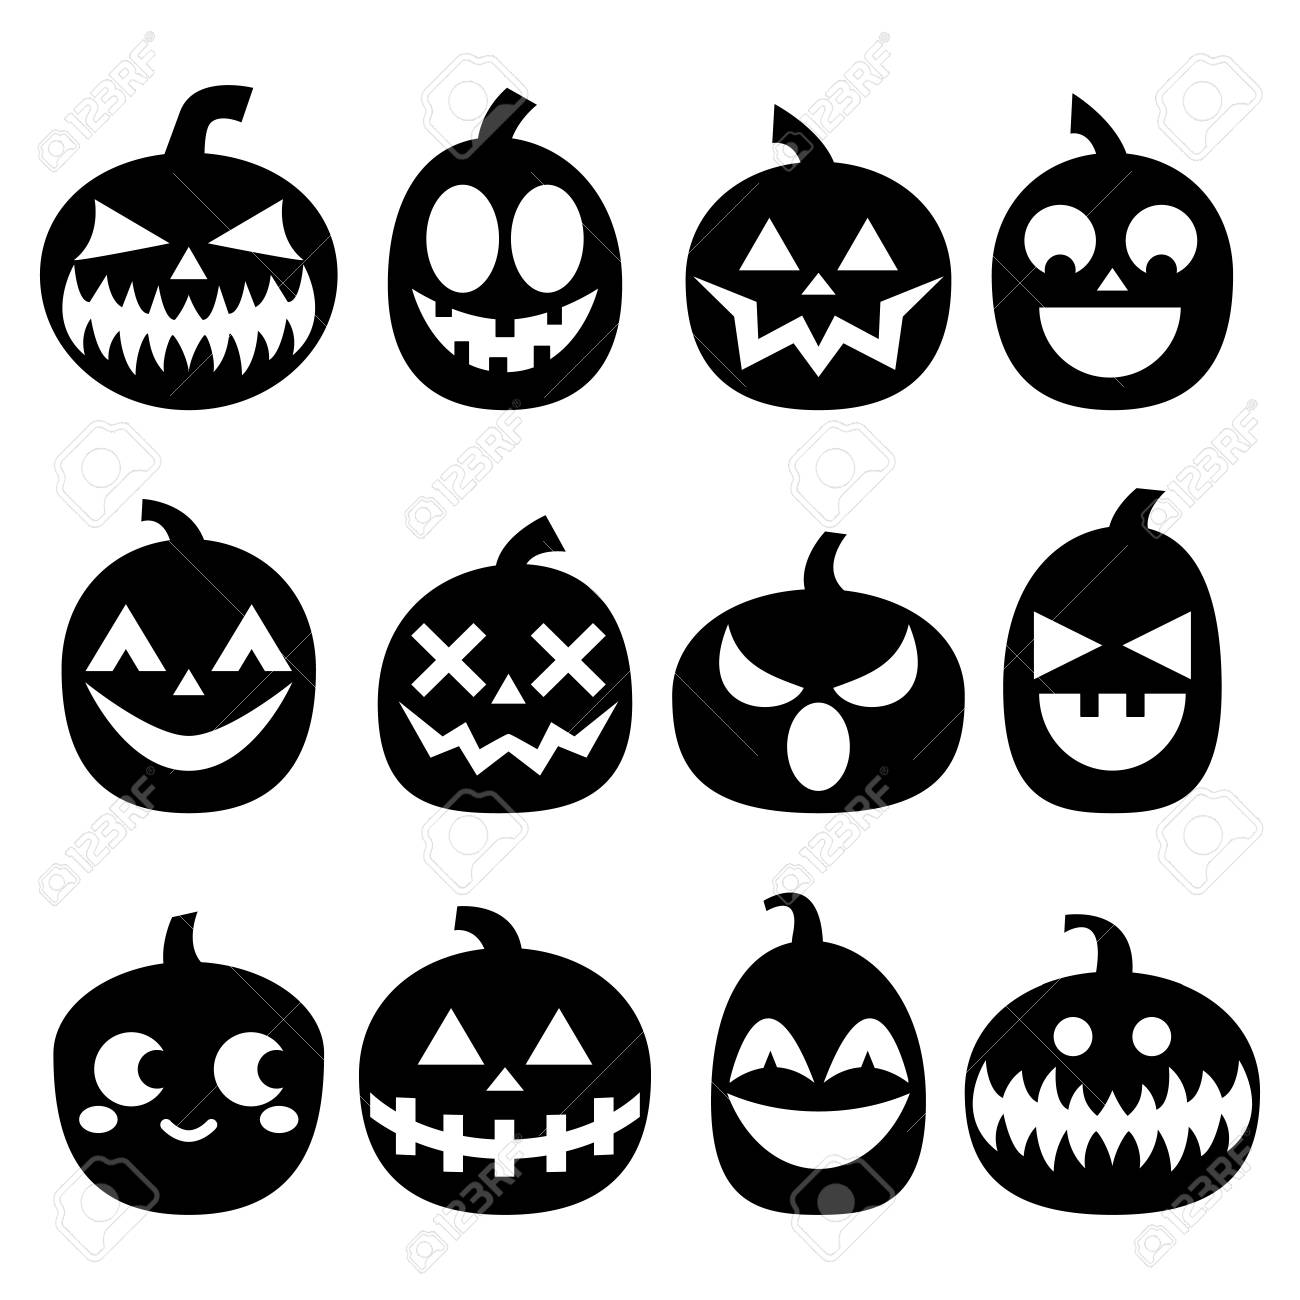 Dessin Visage Halloween.Pumpkin Vector Icons Set Halloween Scary Faces Set Design Horror Royalty Free Cliparts Vectors And Stock Illustration Image 85548728